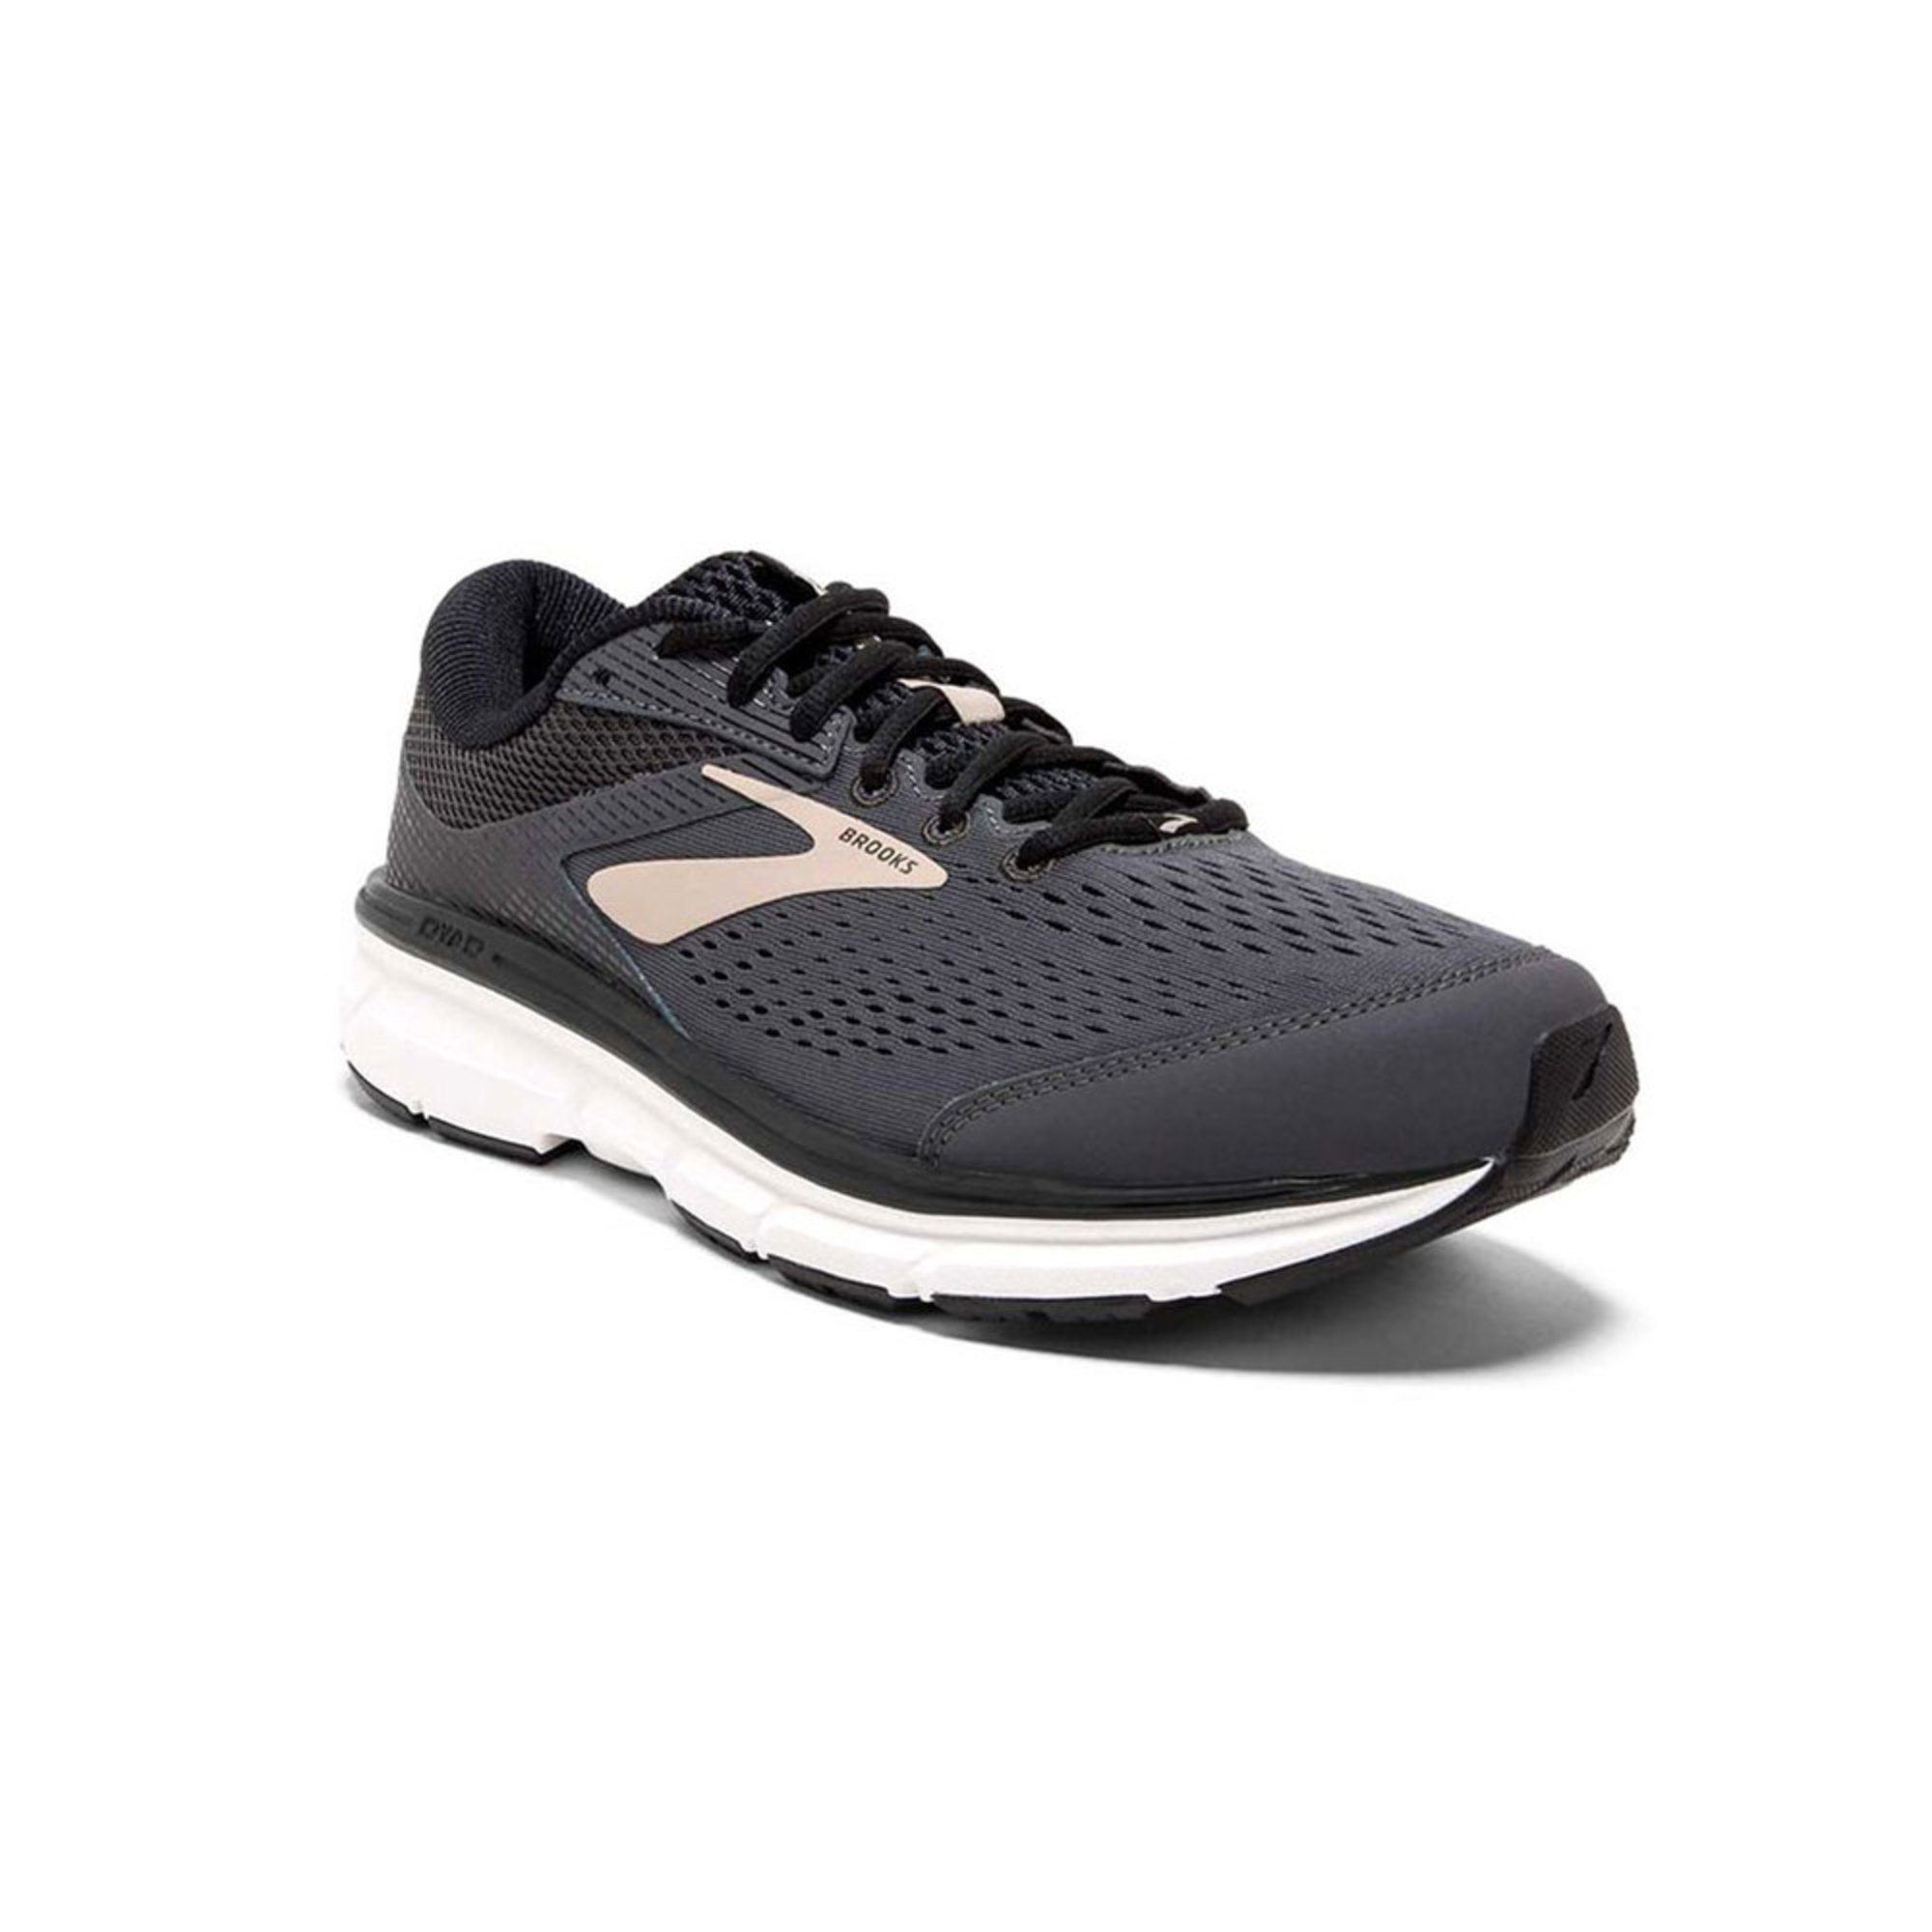 6cd92aa8dc5 Brooks Men s Dyad 10 Running Shoe